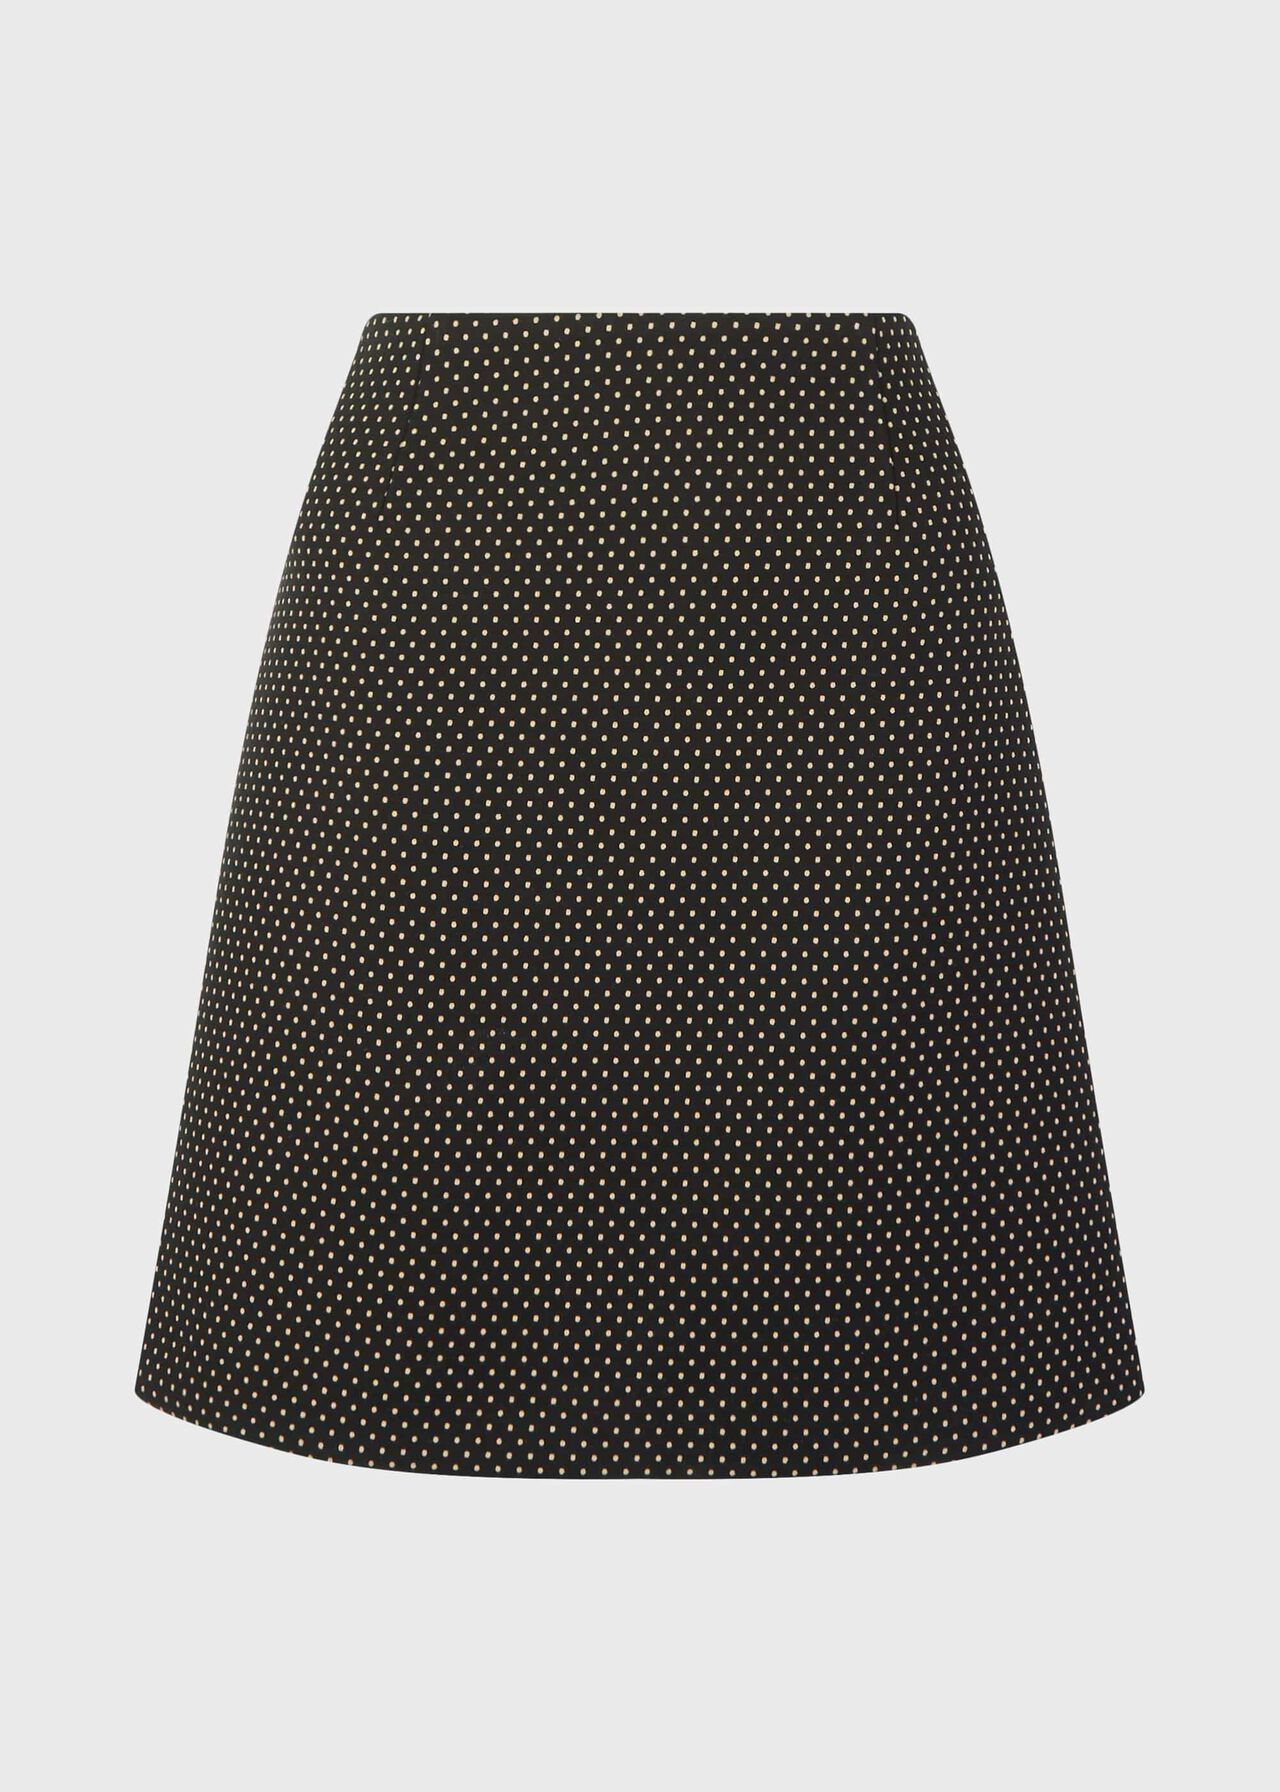 Gracie A line Skirt Black Camel